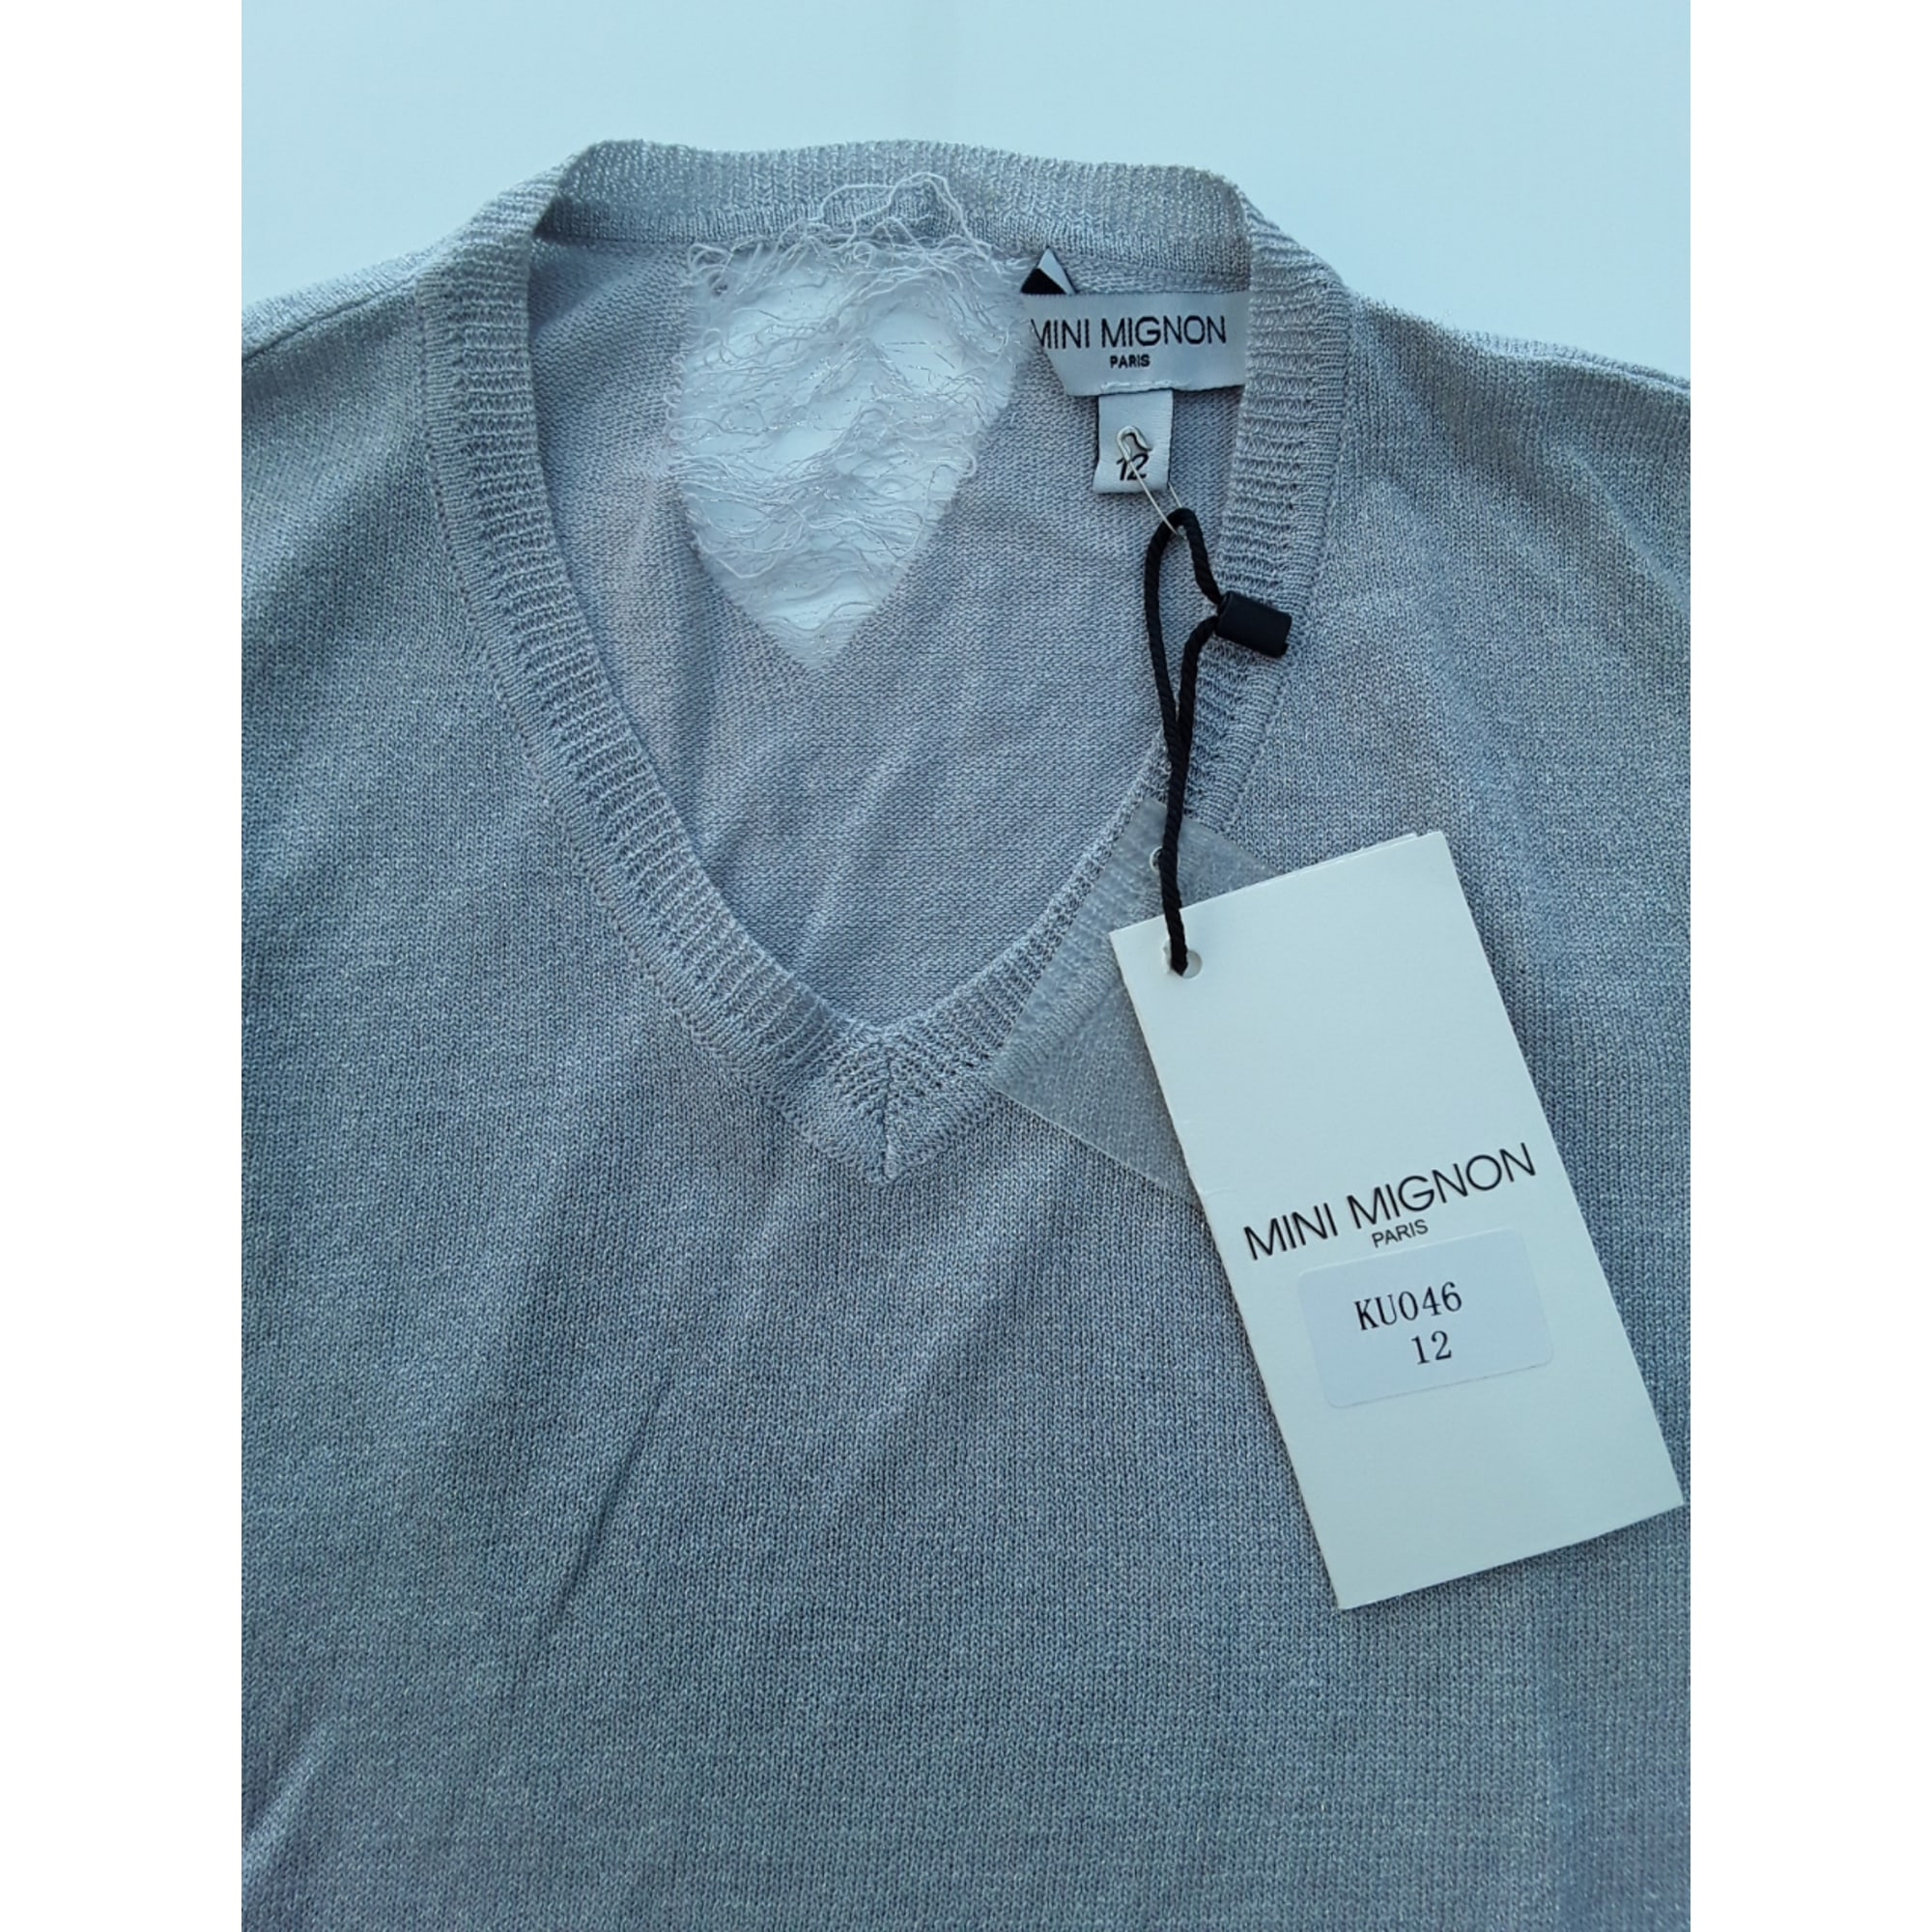 Top, Tee-shirt MINI MIGNON Gris, anthracite